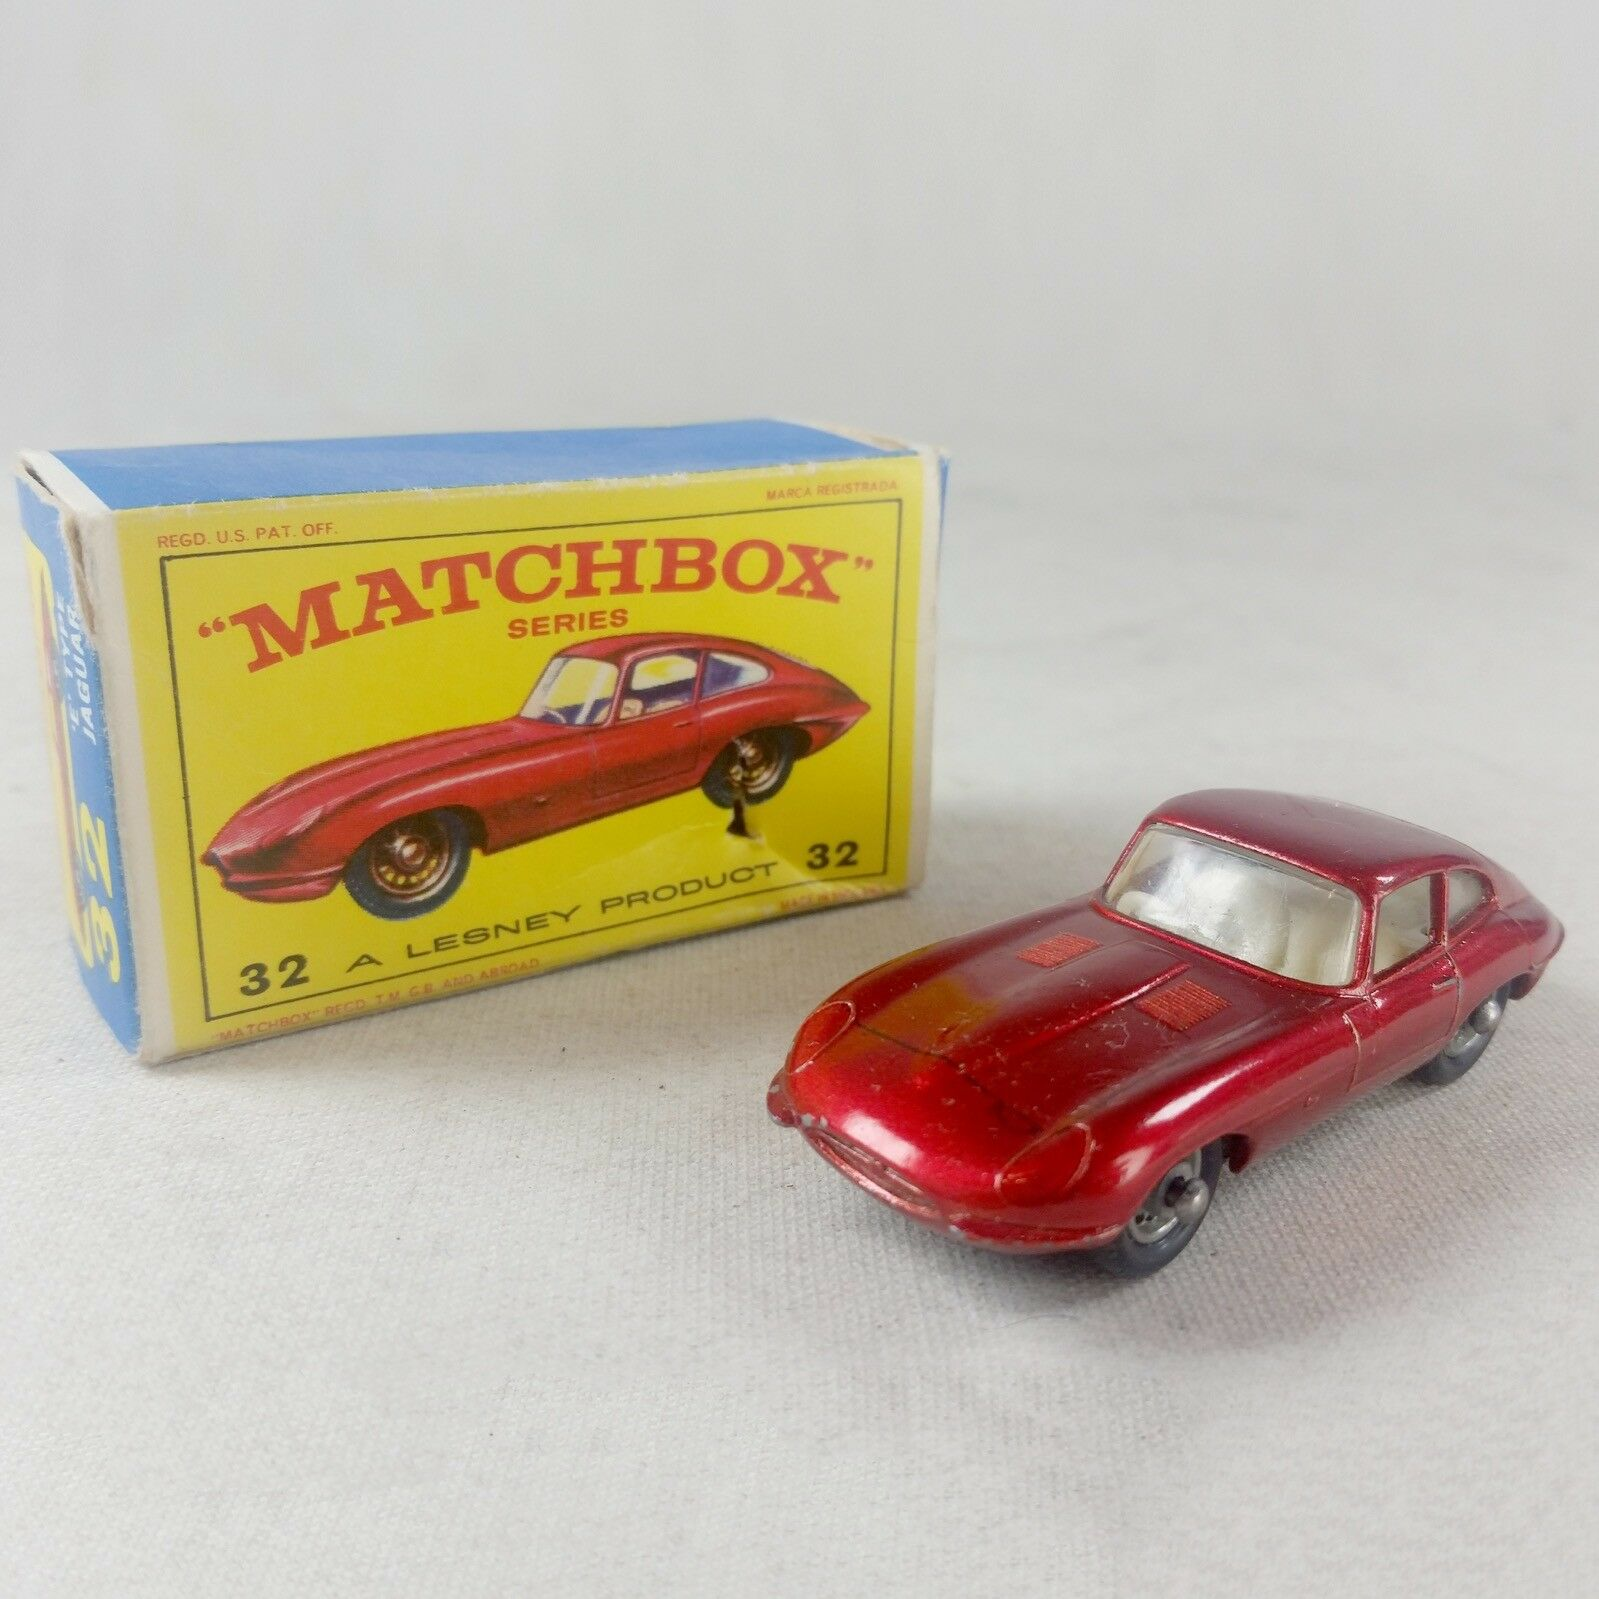 Matchbox series A Lesney Product N° 32b - Jaguar E-type coupe - great condition